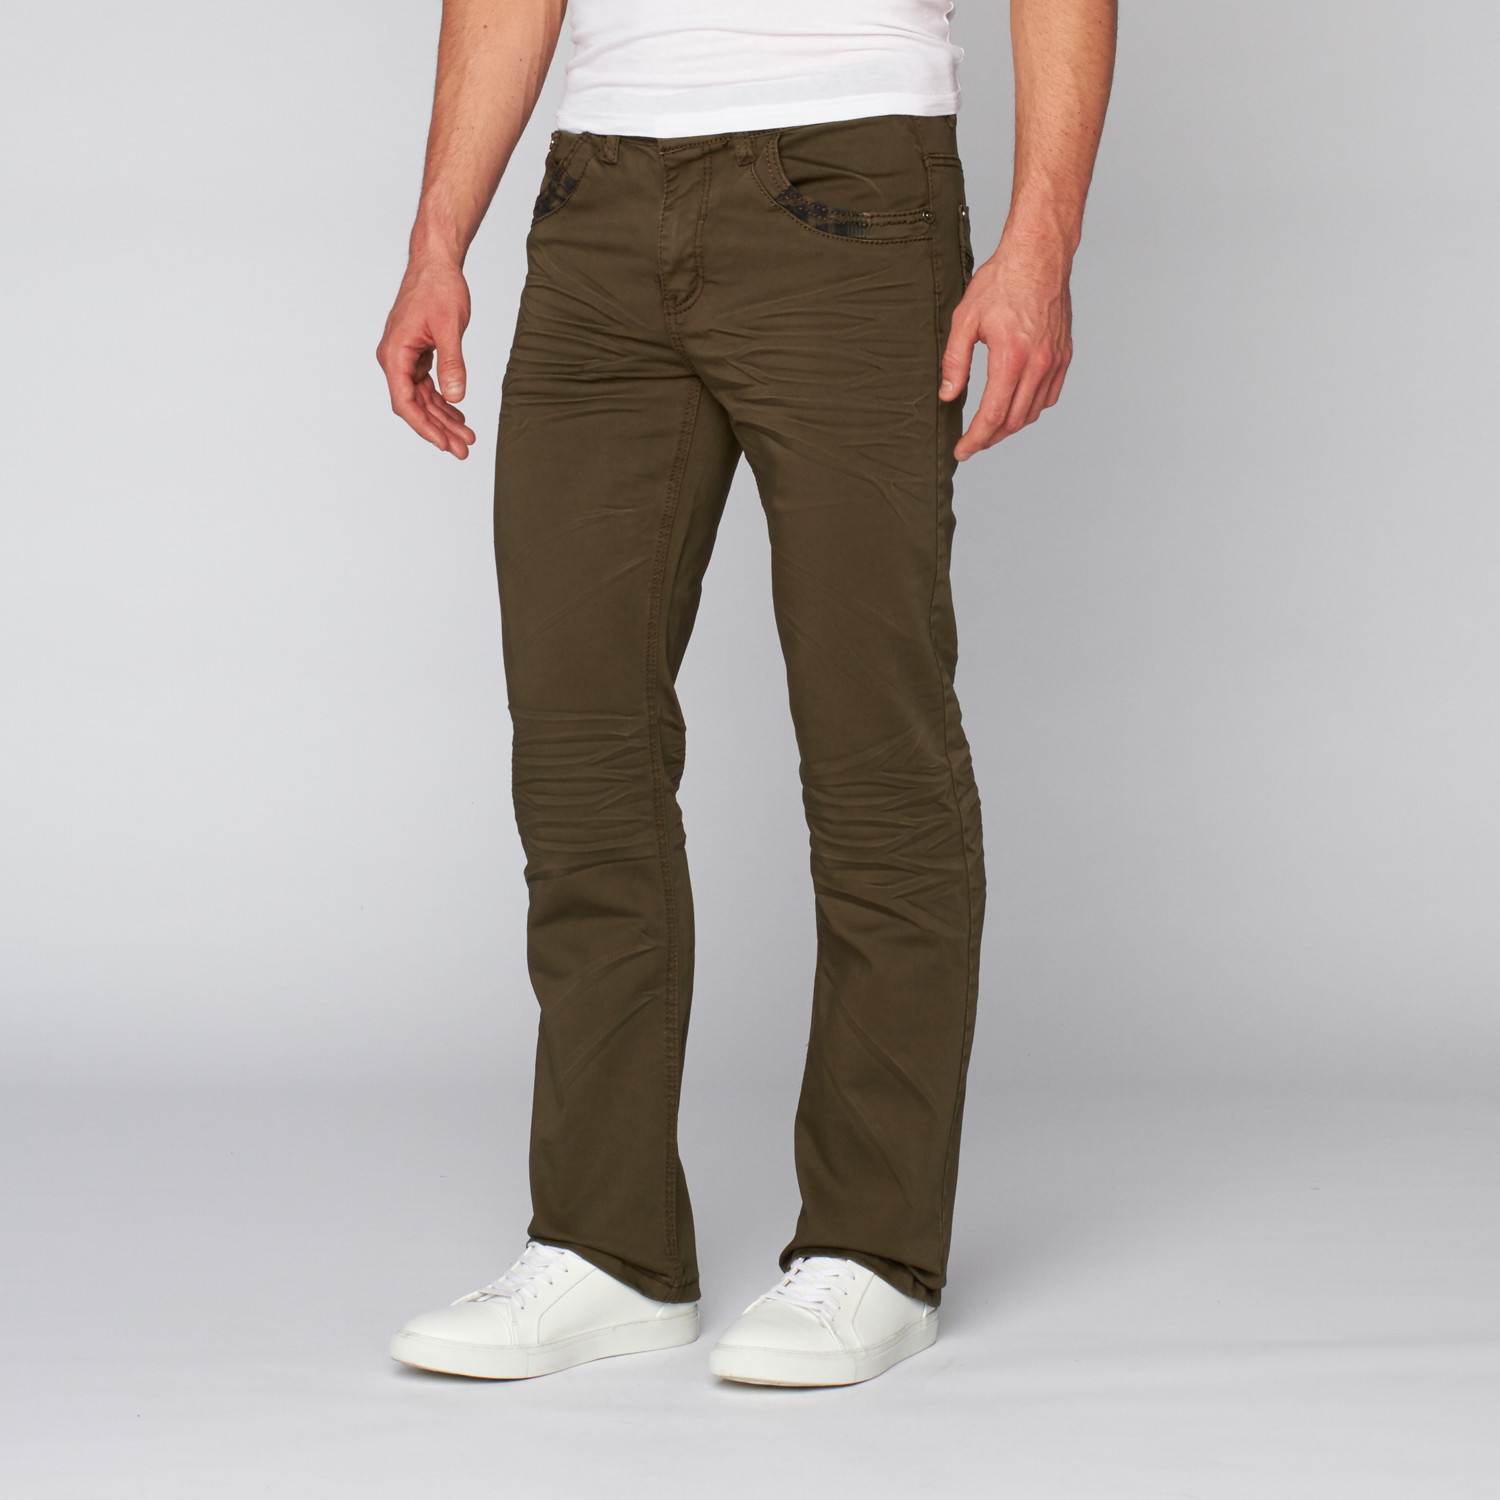 Enjoy free shipping and easy returns every day at Kohl's. Find great deals on Brown Stretch Pants at Kohl's today!